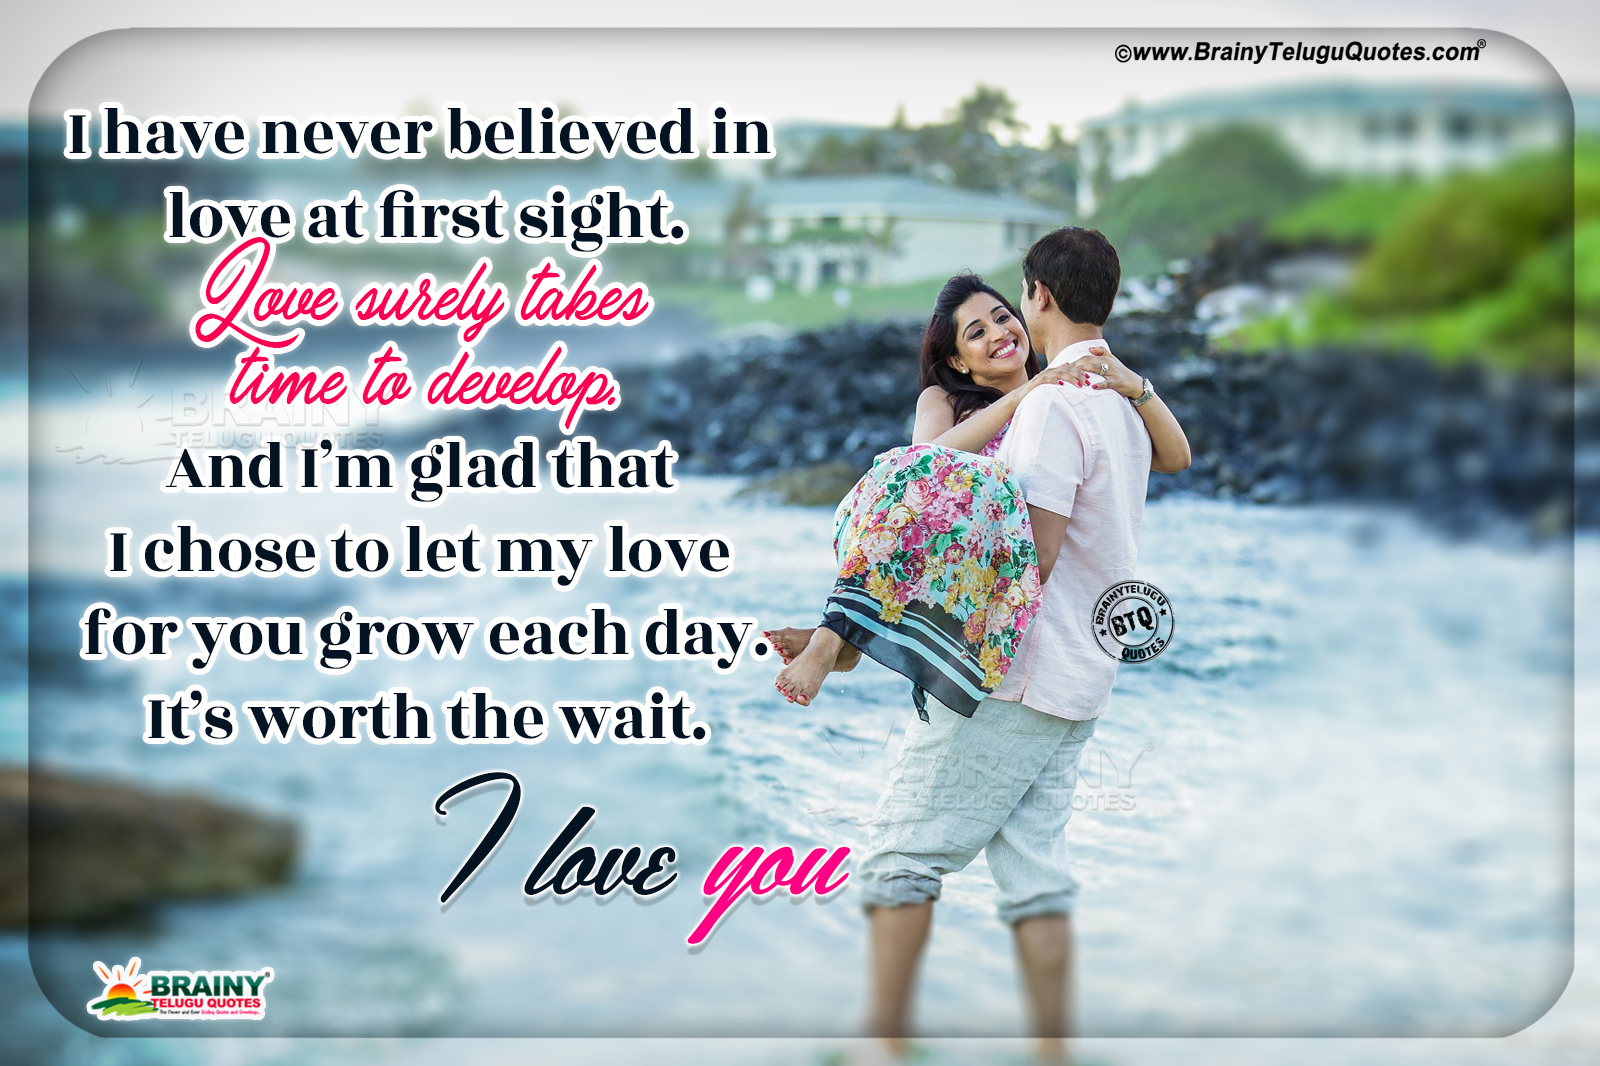 Heart Touching Love Quotes English With Couple Deep Hugging Hd Wallpapers Brainyteluguquotes Comtelugu Quotes English Quotes Hindi Quotes Tamil Quotes Greetings